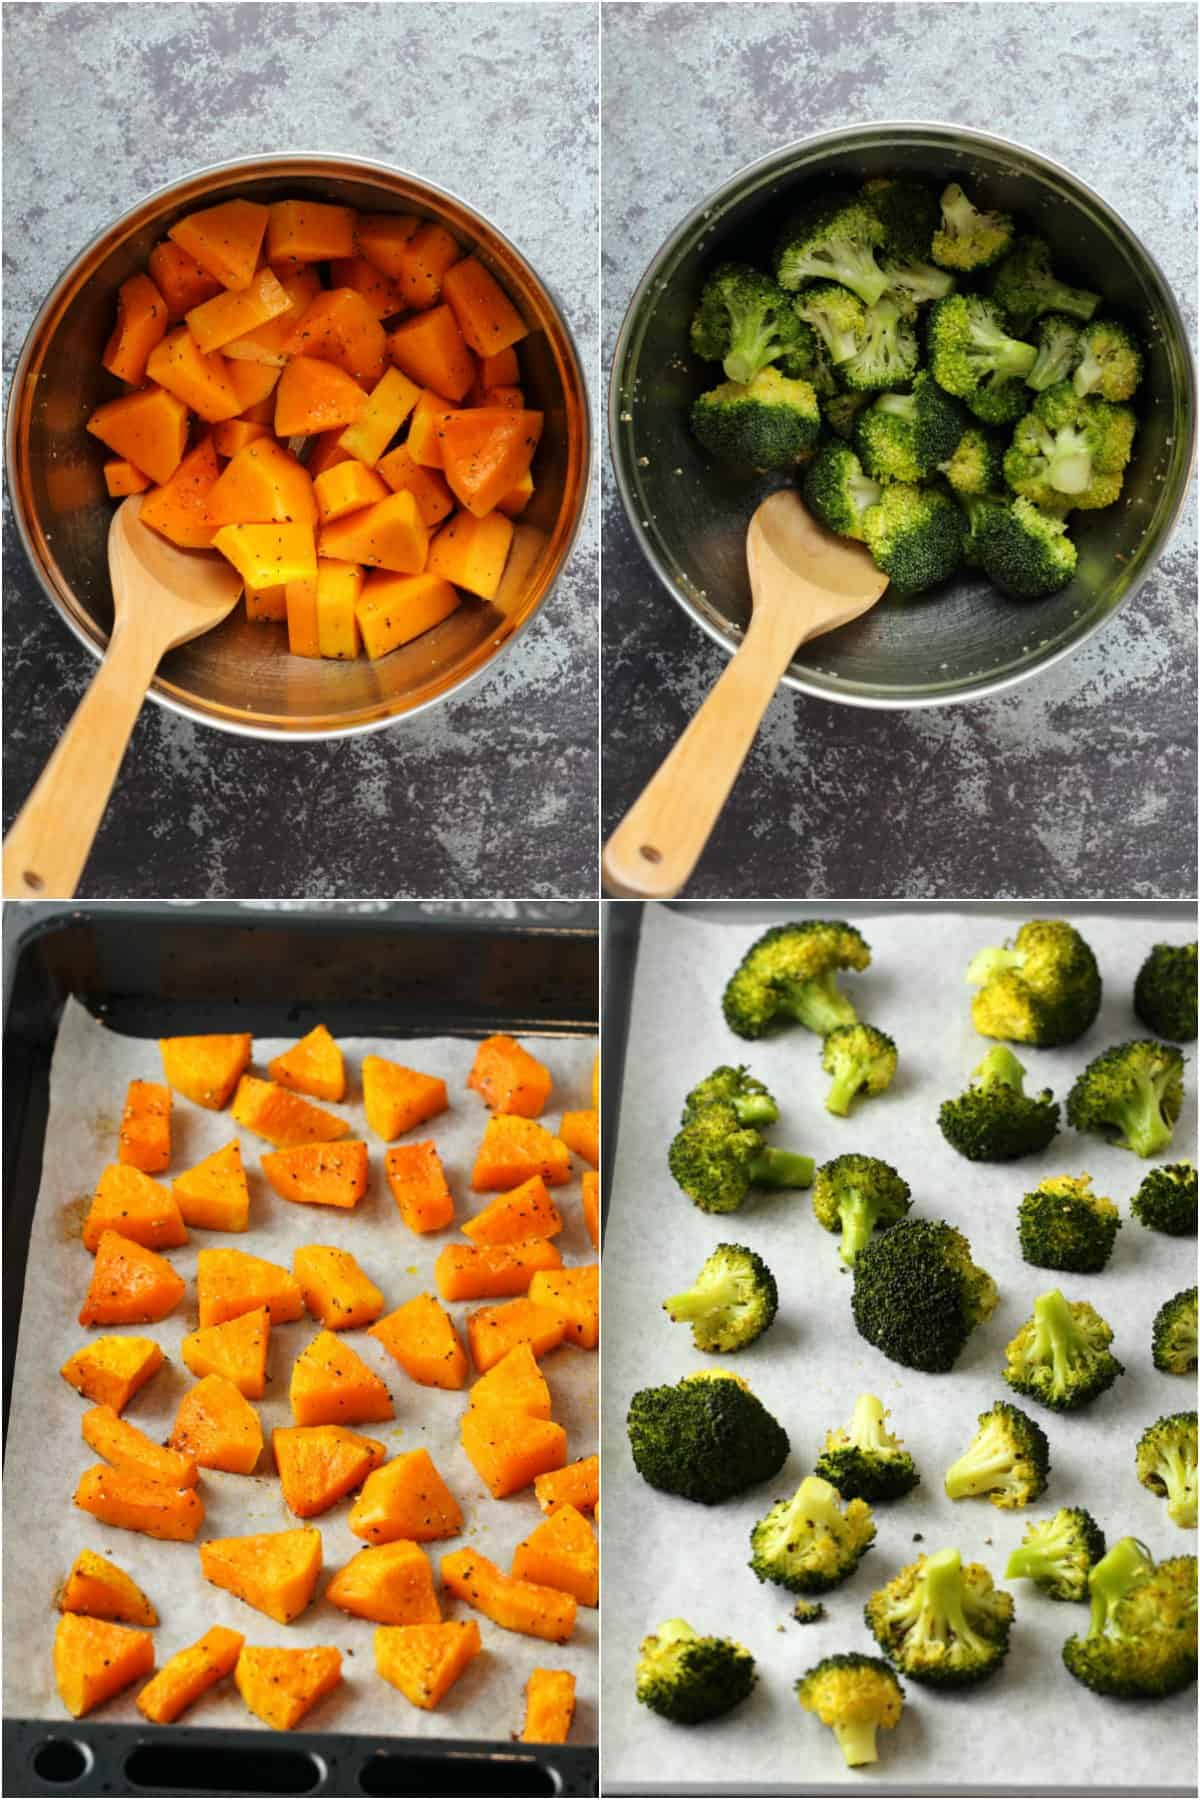 Step by step process photo collage of preparing and baking butternut squash and broccoli.